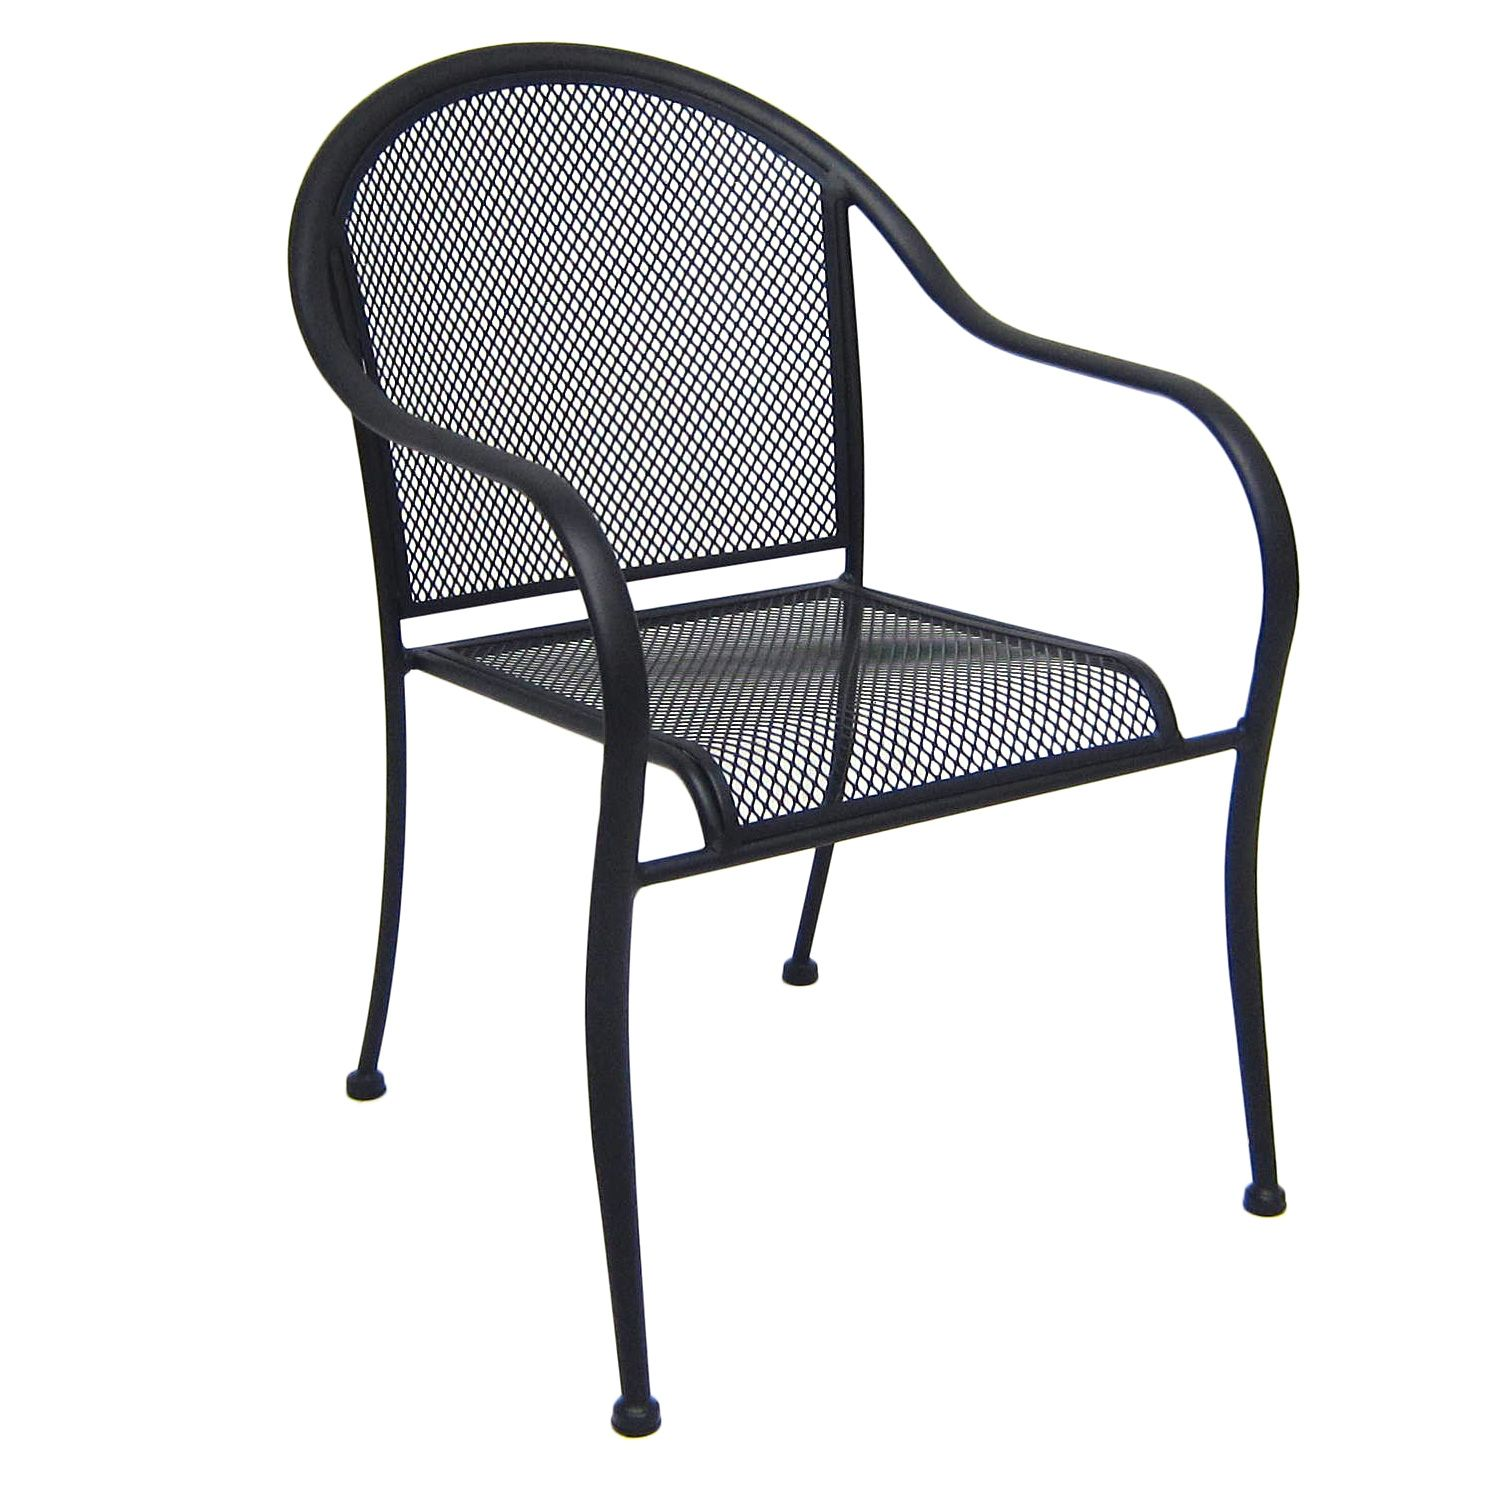 Wrought iron commercial bistro chair for Wrought iron furniture